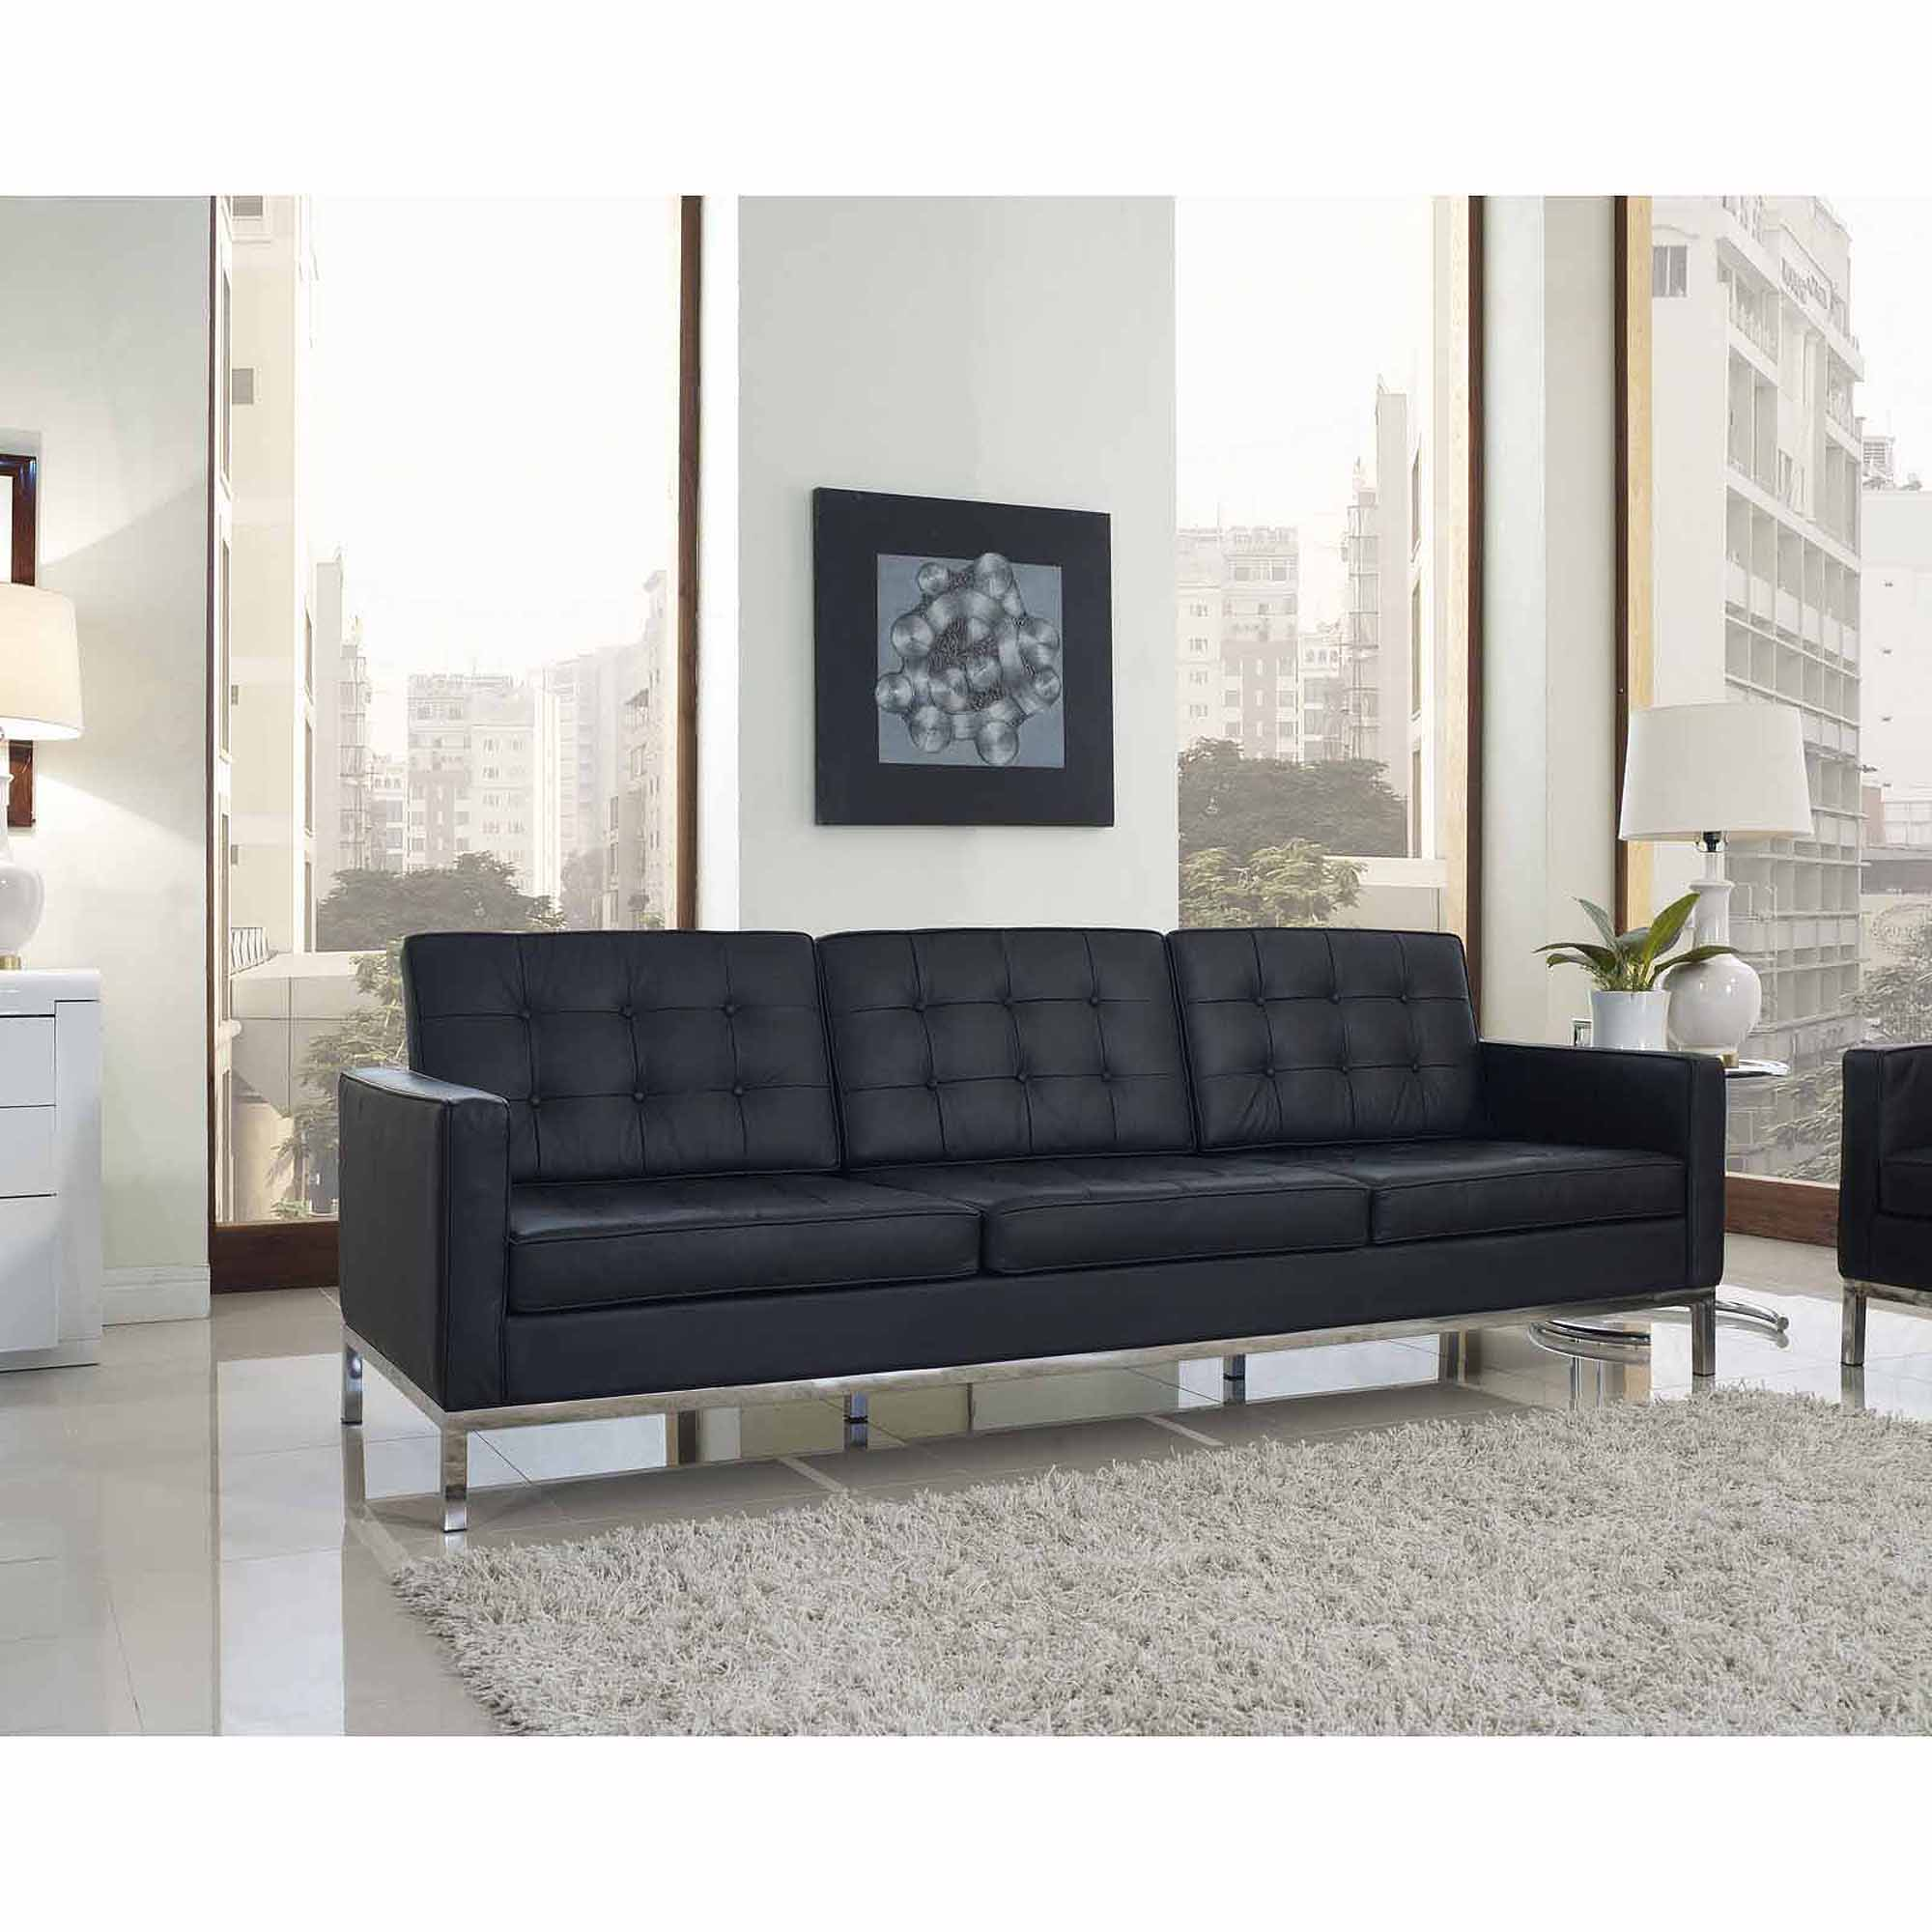 Modway Loft Leather Sofa with Steel Legs Multiple Colors